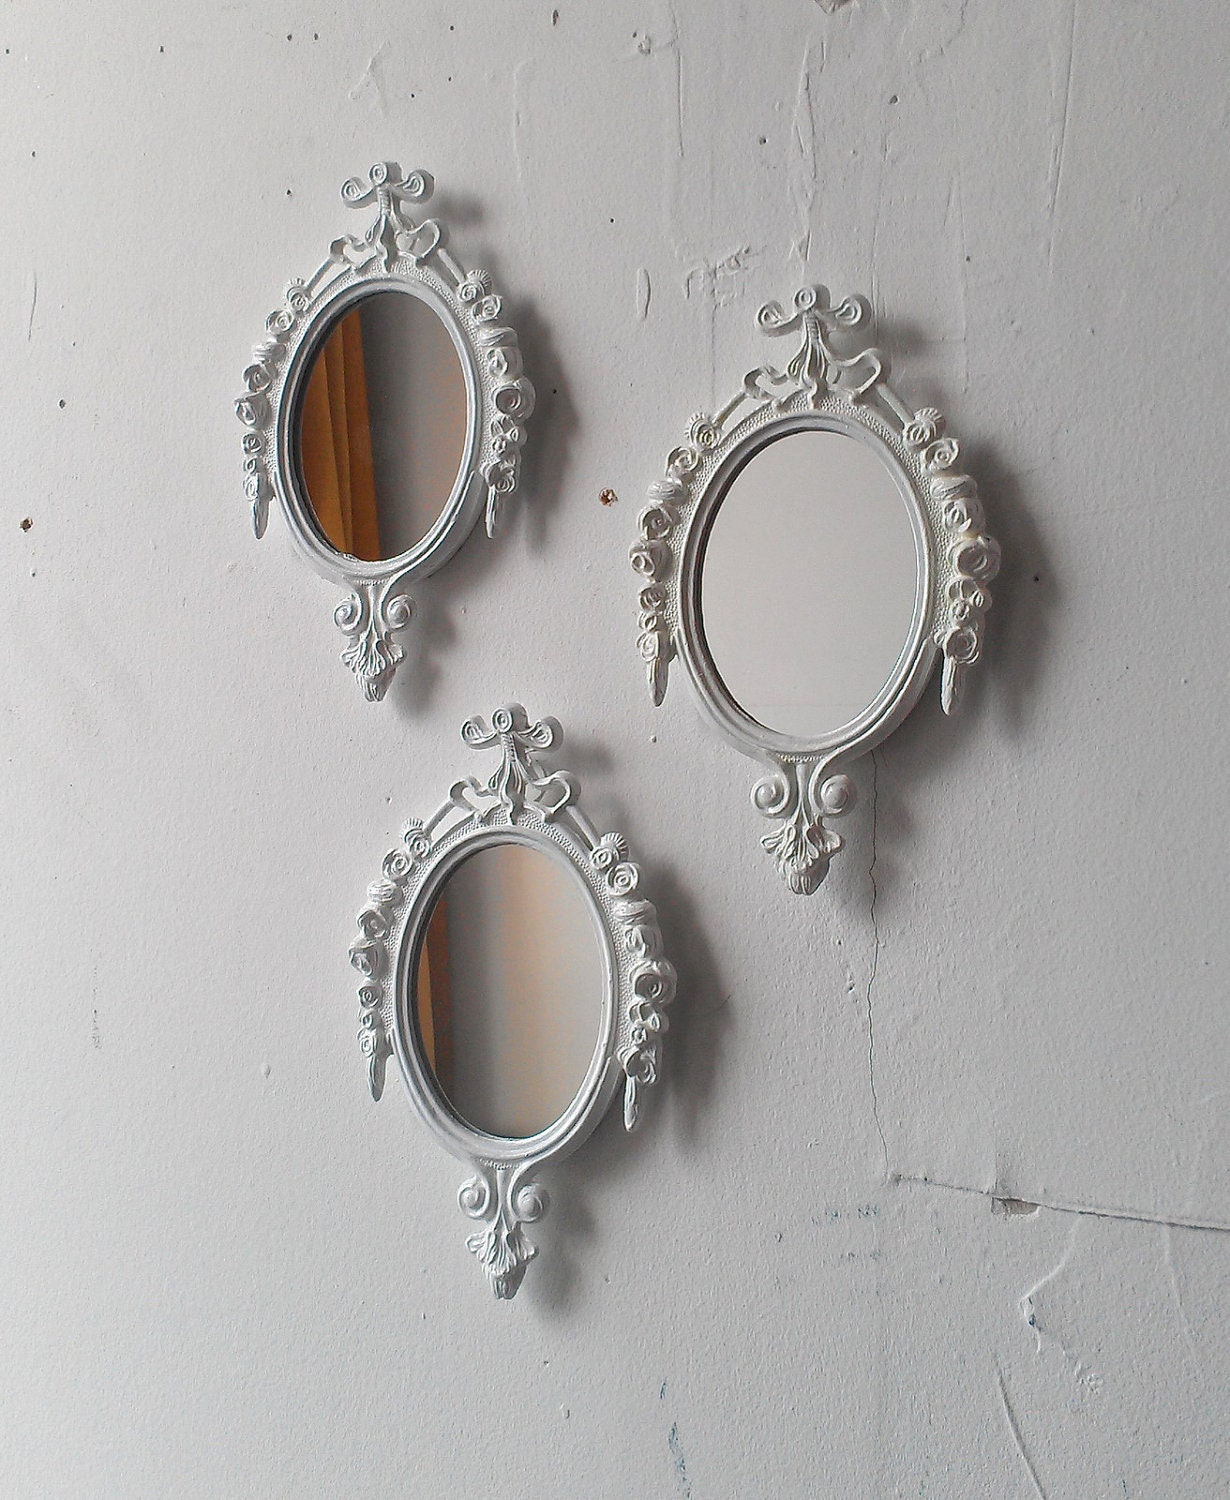 White mirror set small decorative mirrors vintage french for Small white framed mirrors